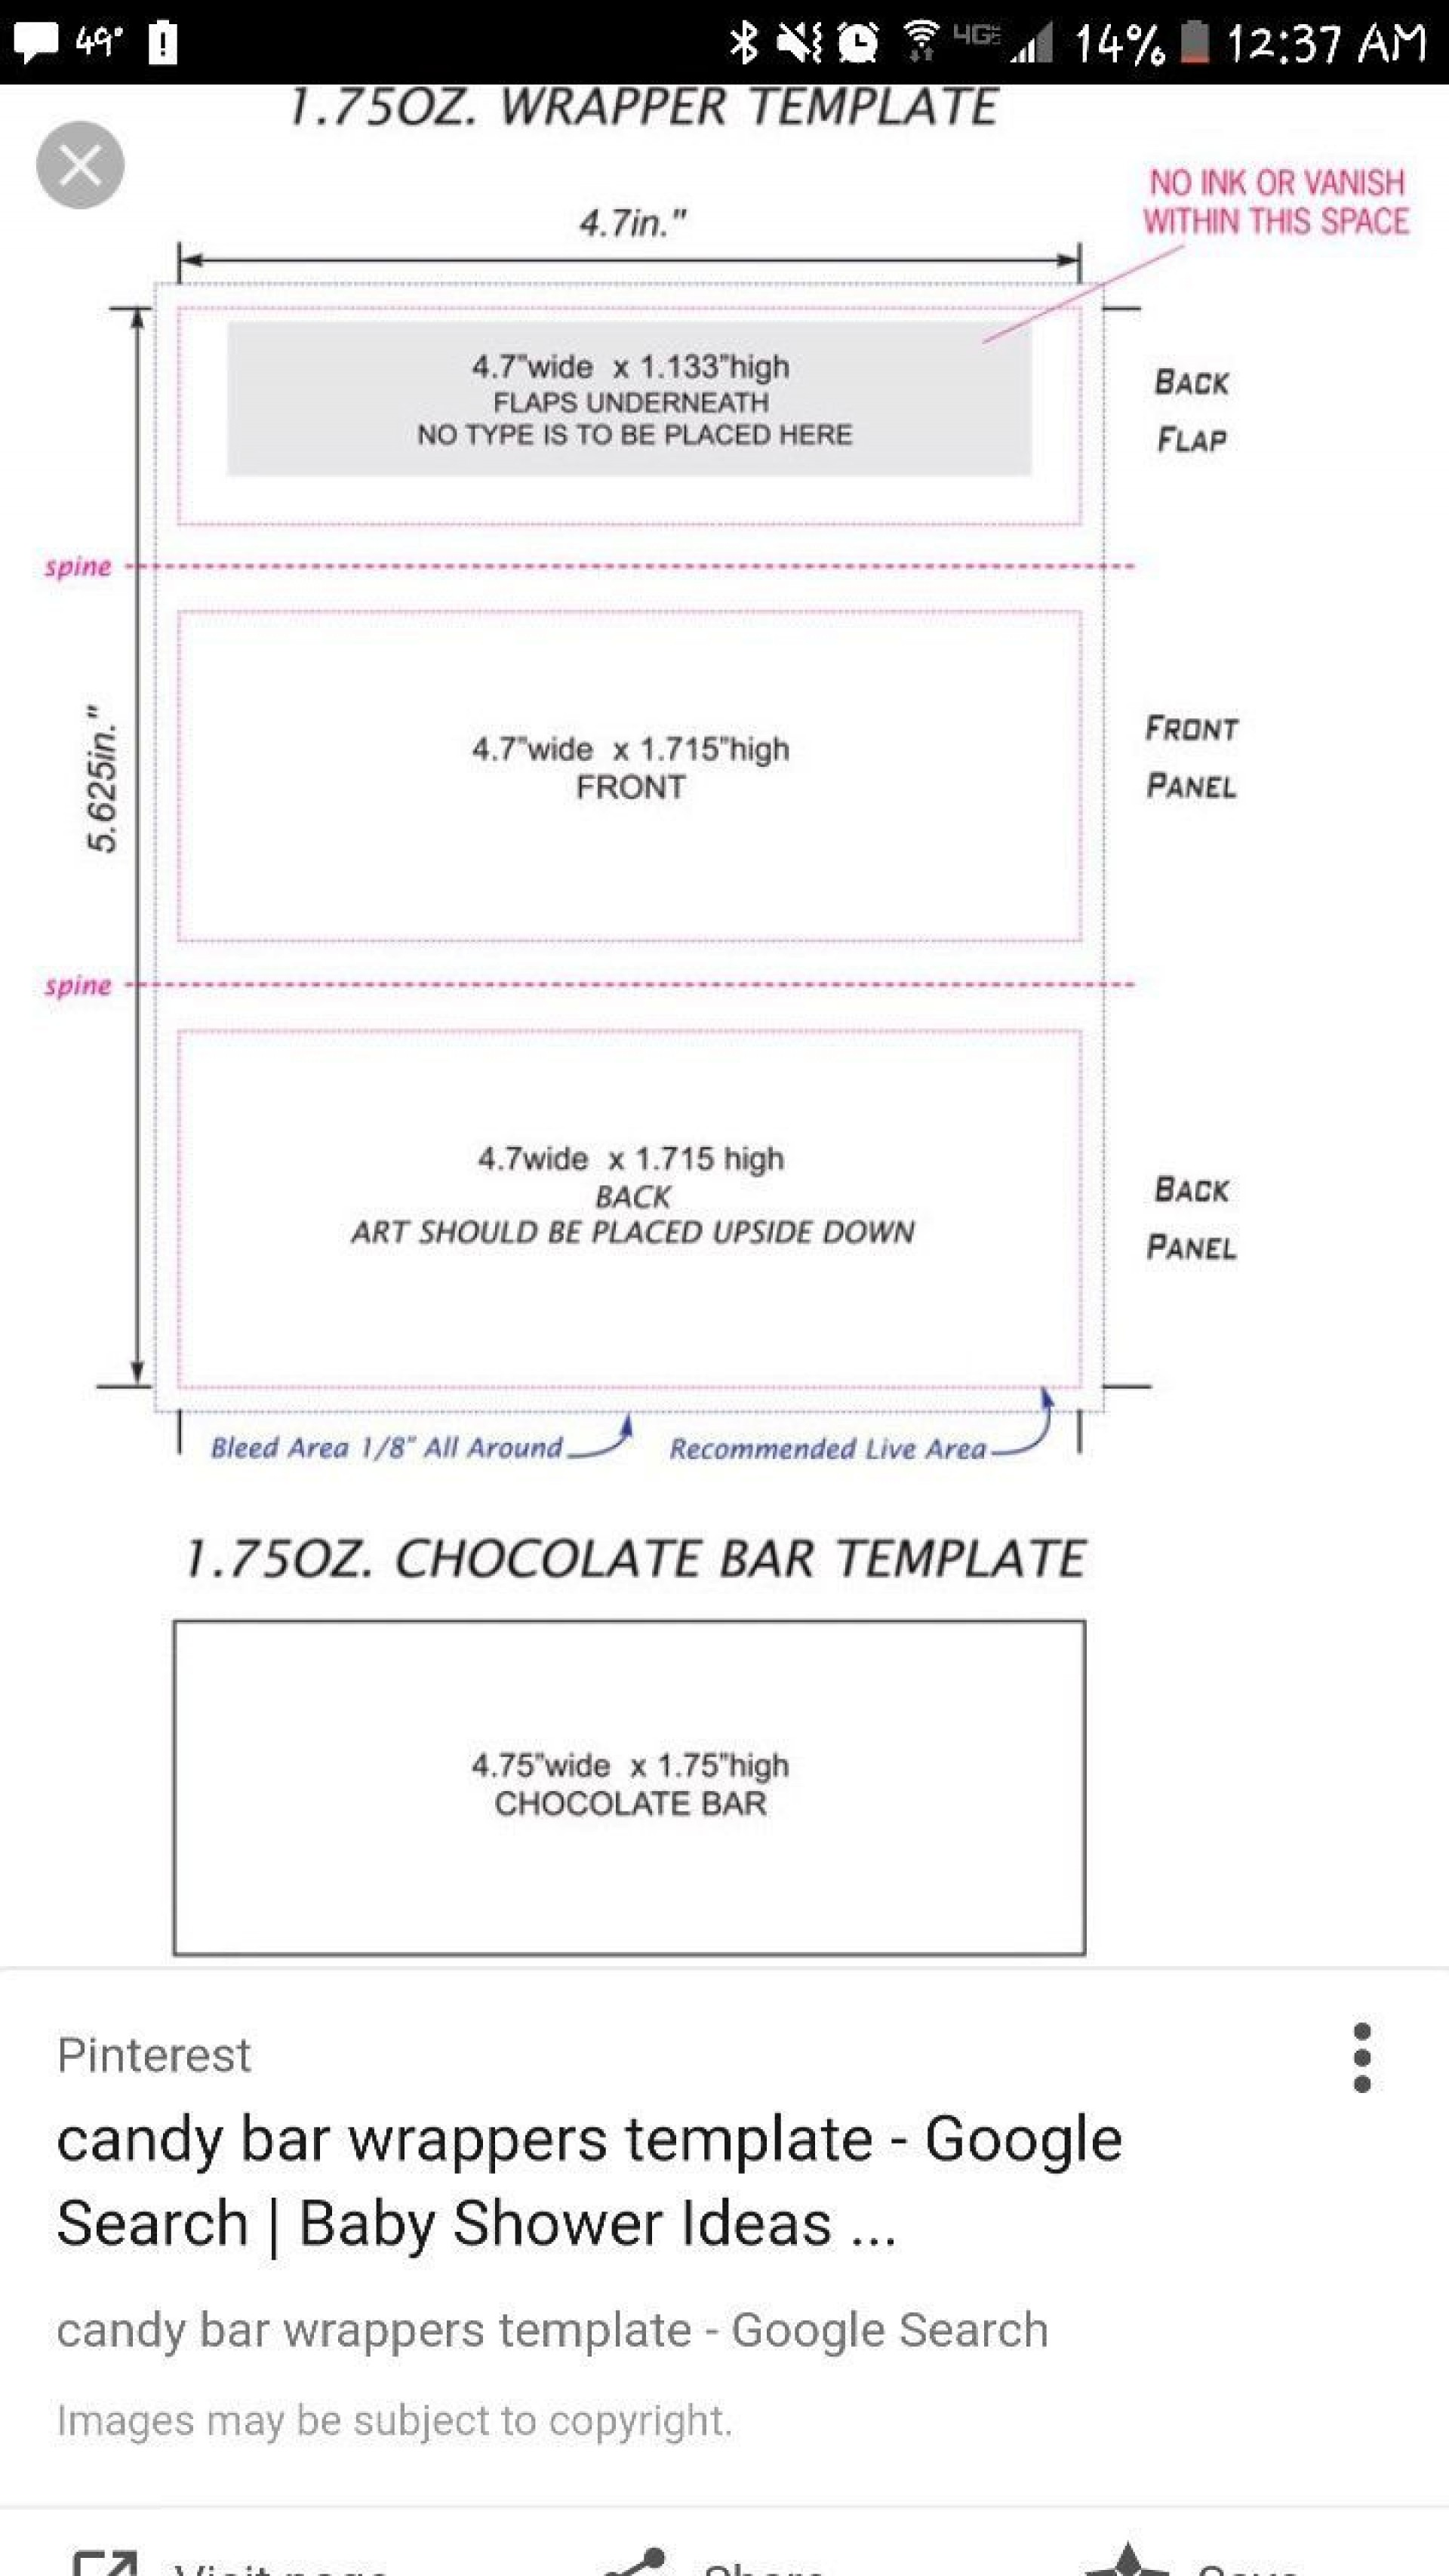 005 Impressive Hershey Candy Bar Wrapper Template Image  Free Word1920